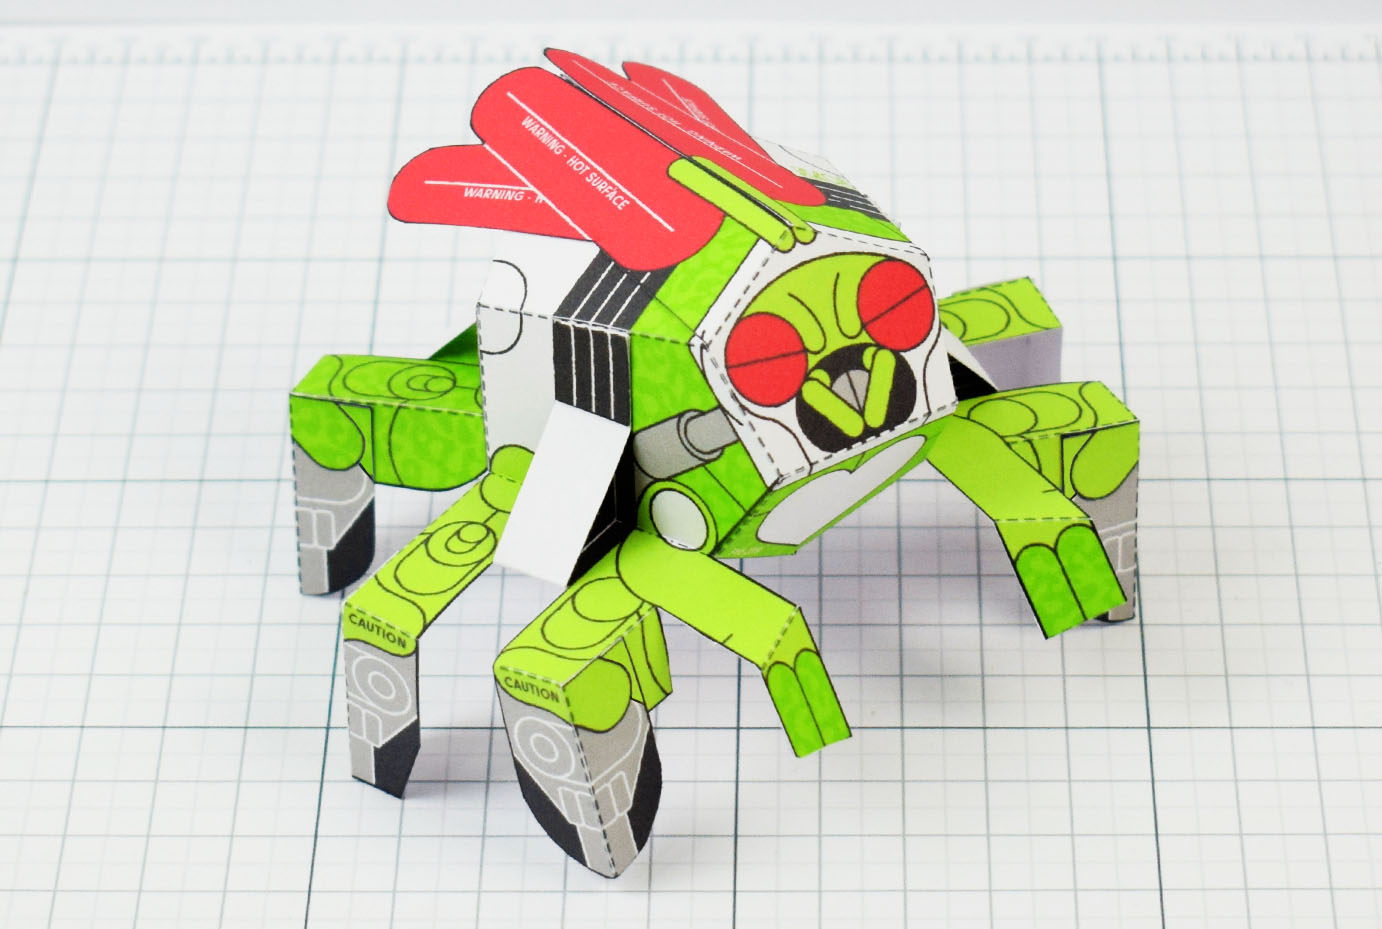 PTI - Doubt Fly Monster Paper Toy Bug Insect - Image Main